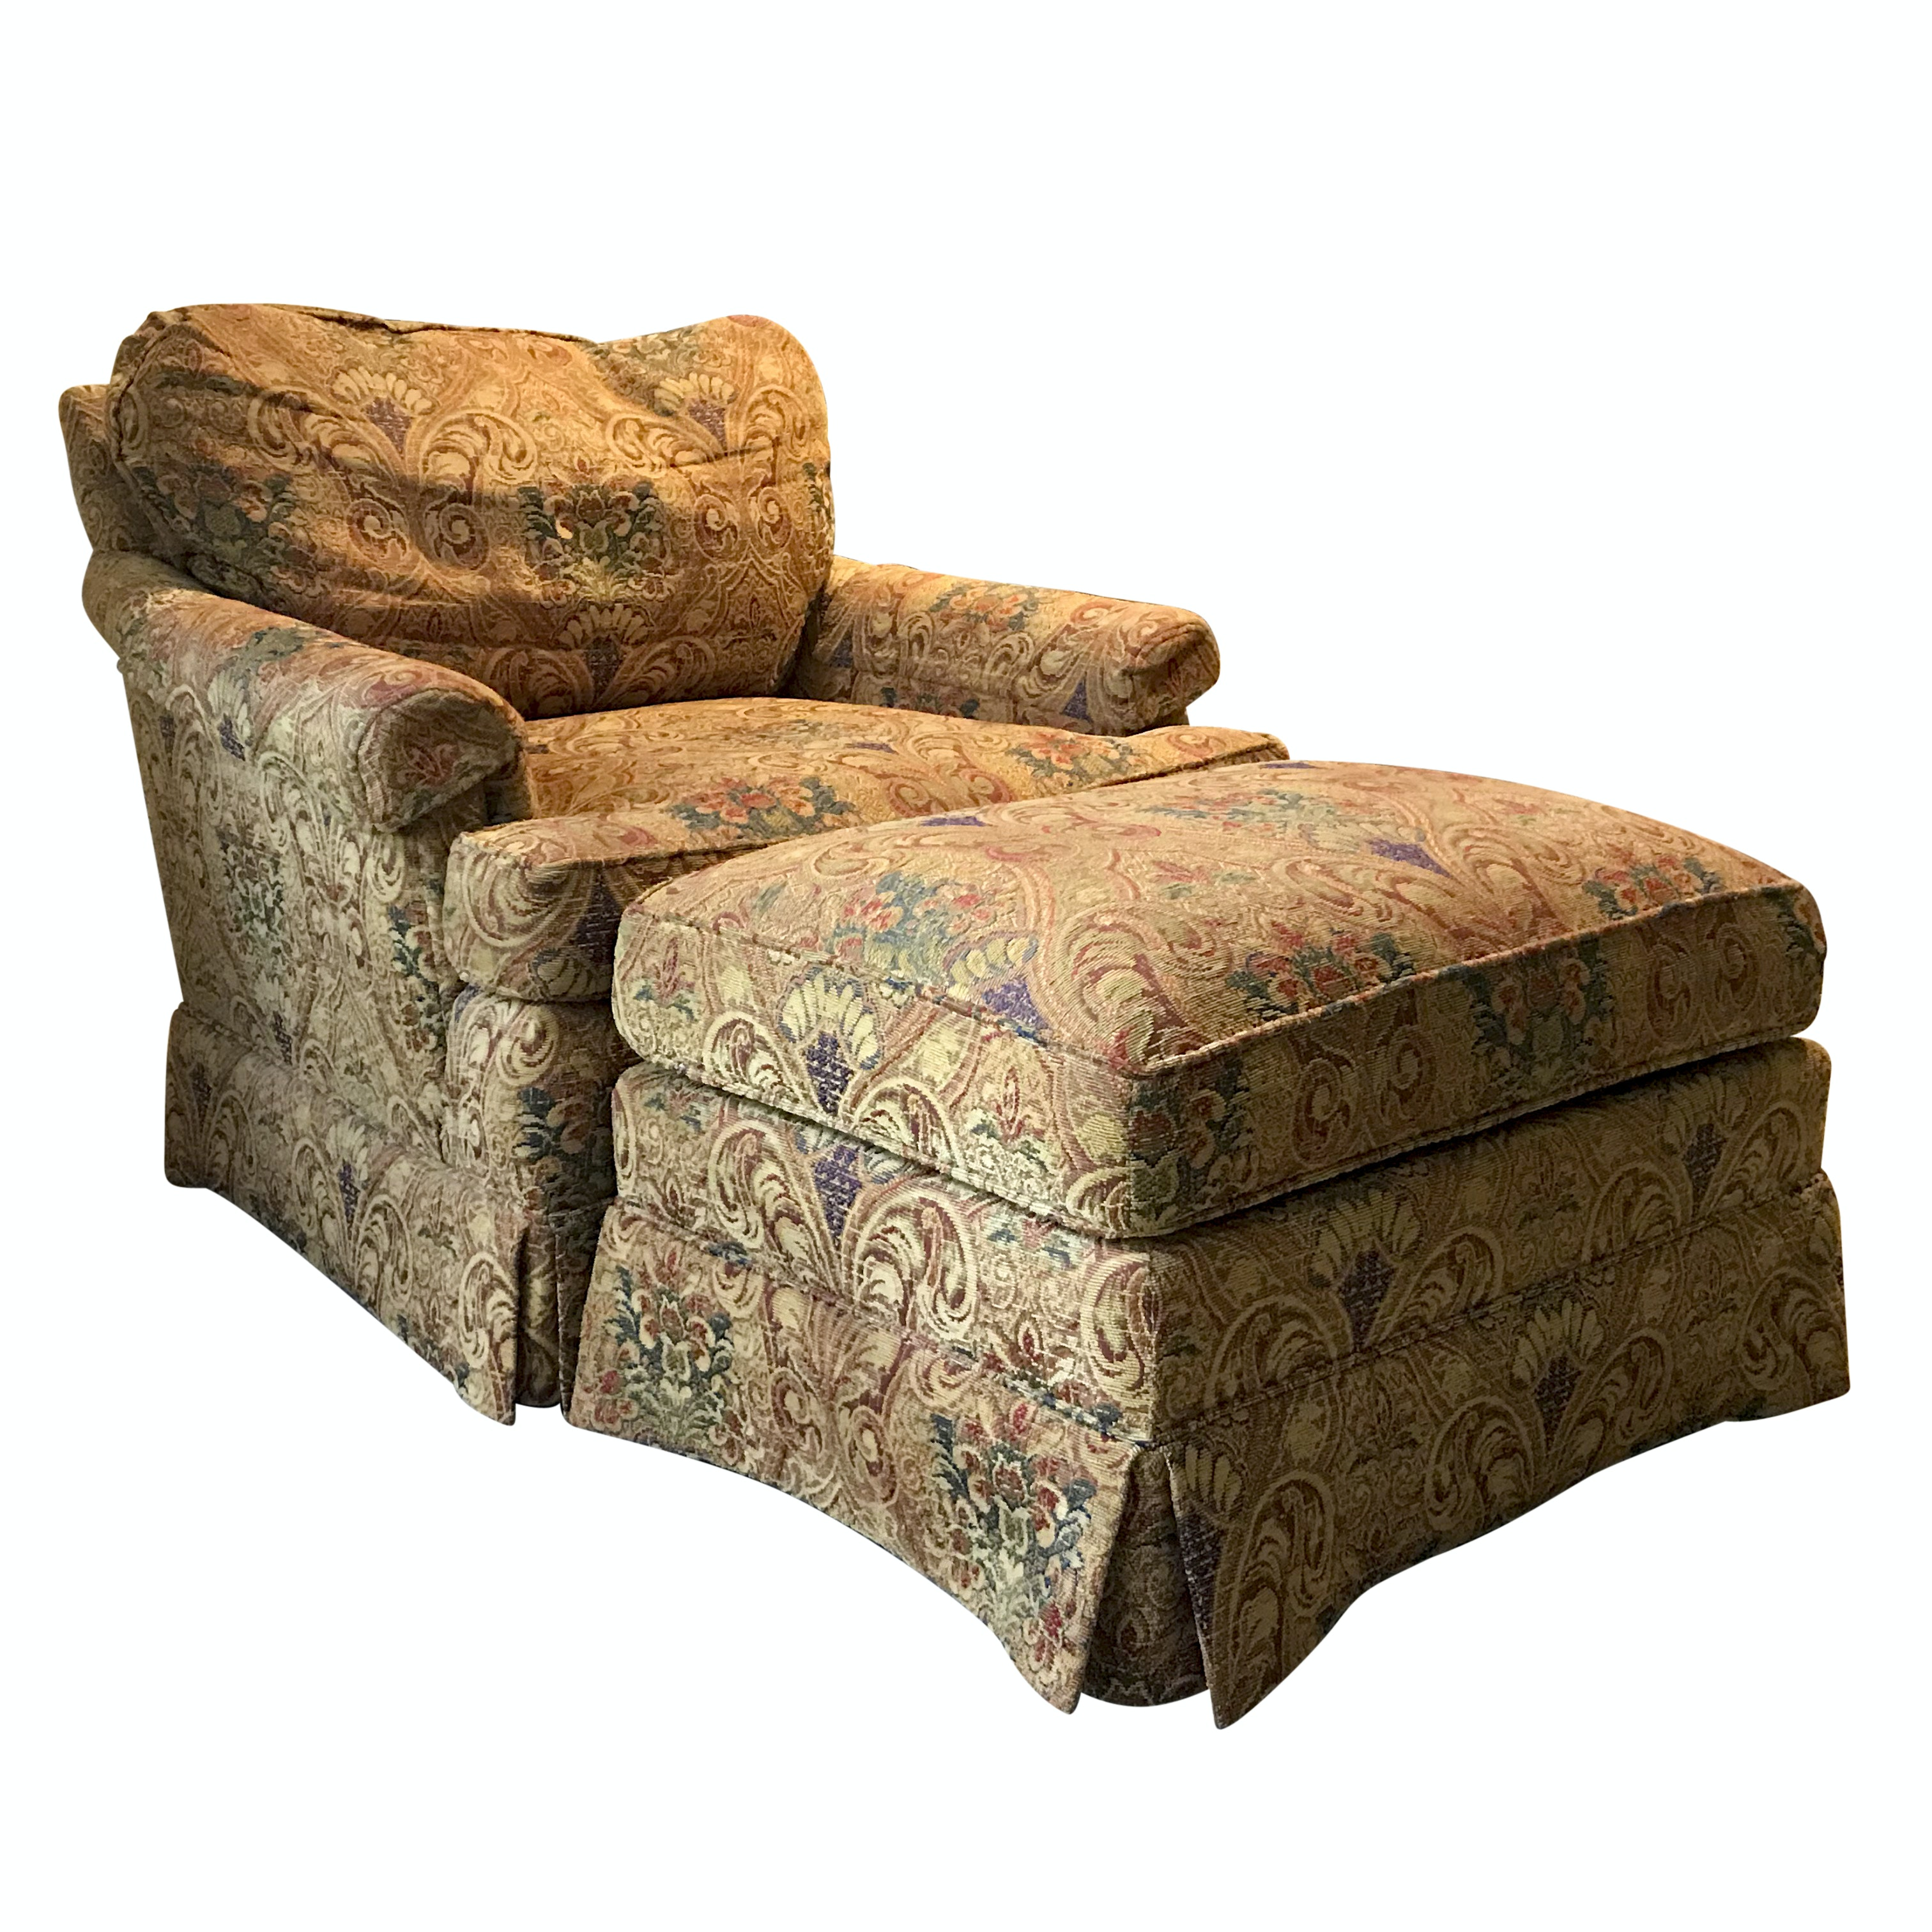 Tapestry Upholstered Armchair and Ottoman